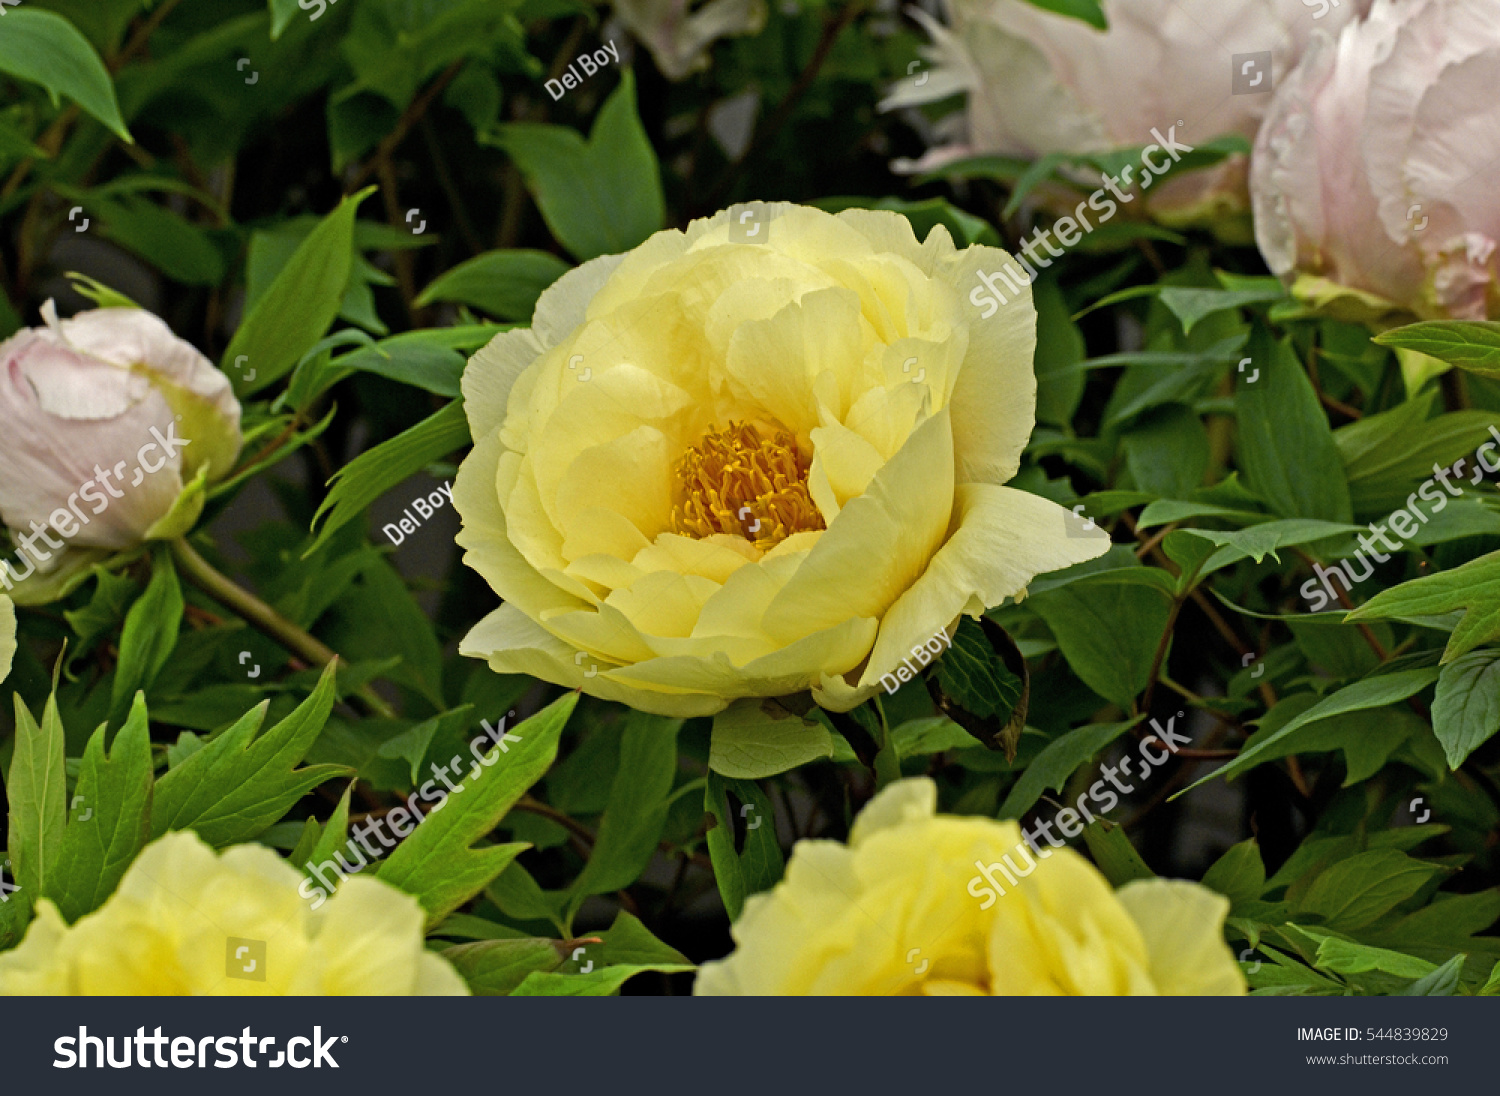 Tree Peony High Noon In Flower Ez Canvas